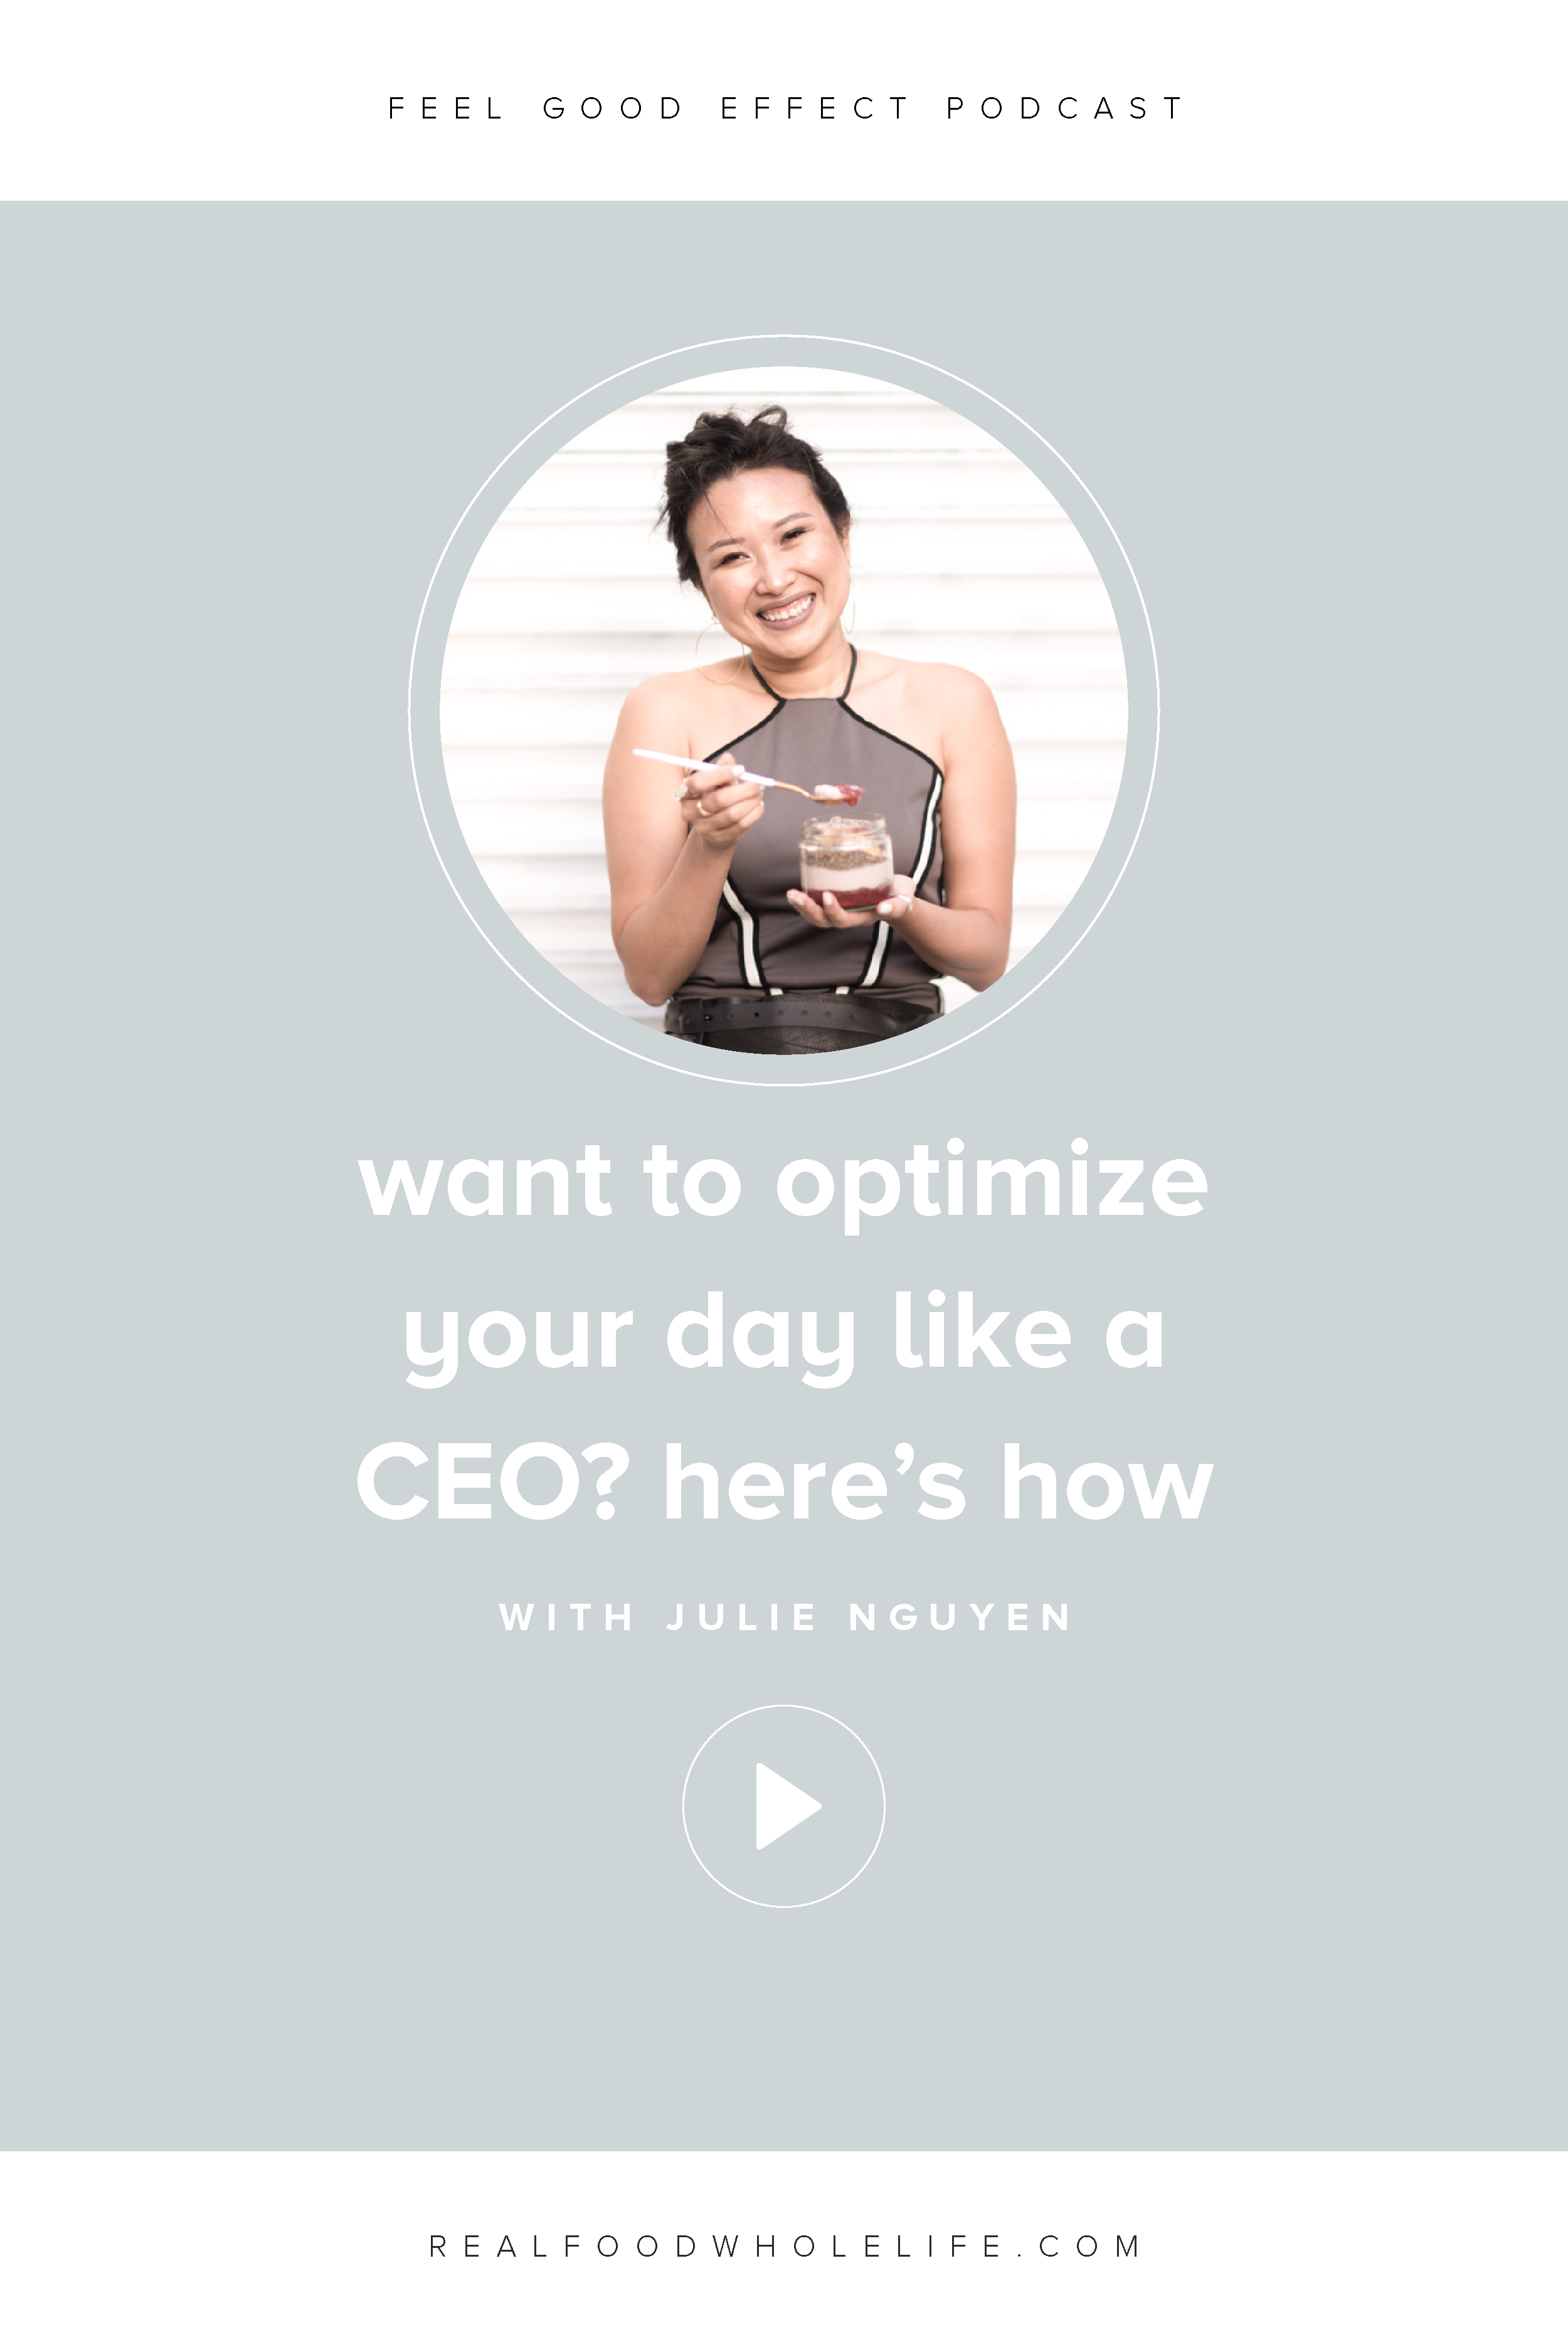 Optimize your day like a CEO with Julie Nguyen, CEO and Co-Founder of Methodology, on the Feel Good Effect Podcast. #realfoodwholelife #feelgoodeffectpodcast #productivity #timemanagement #purpose #goalsetting #goals